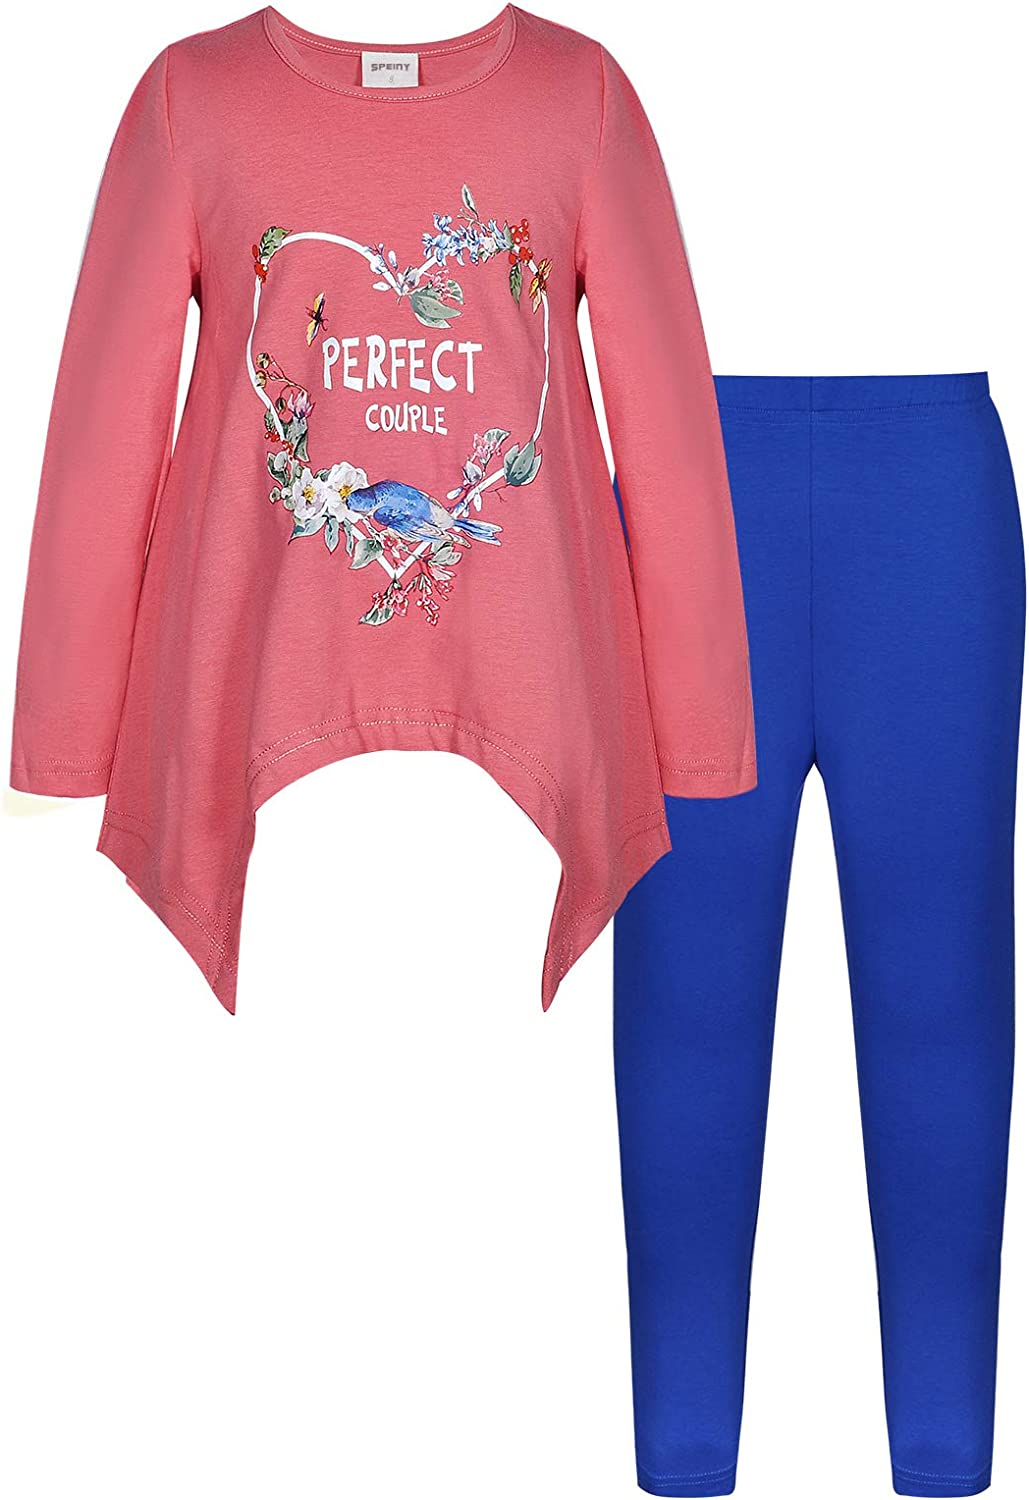 SPEINY Girls' Clothes Printed Albuquerque Mall Long Casual Sleeve Jersey T-shirt Regular discount